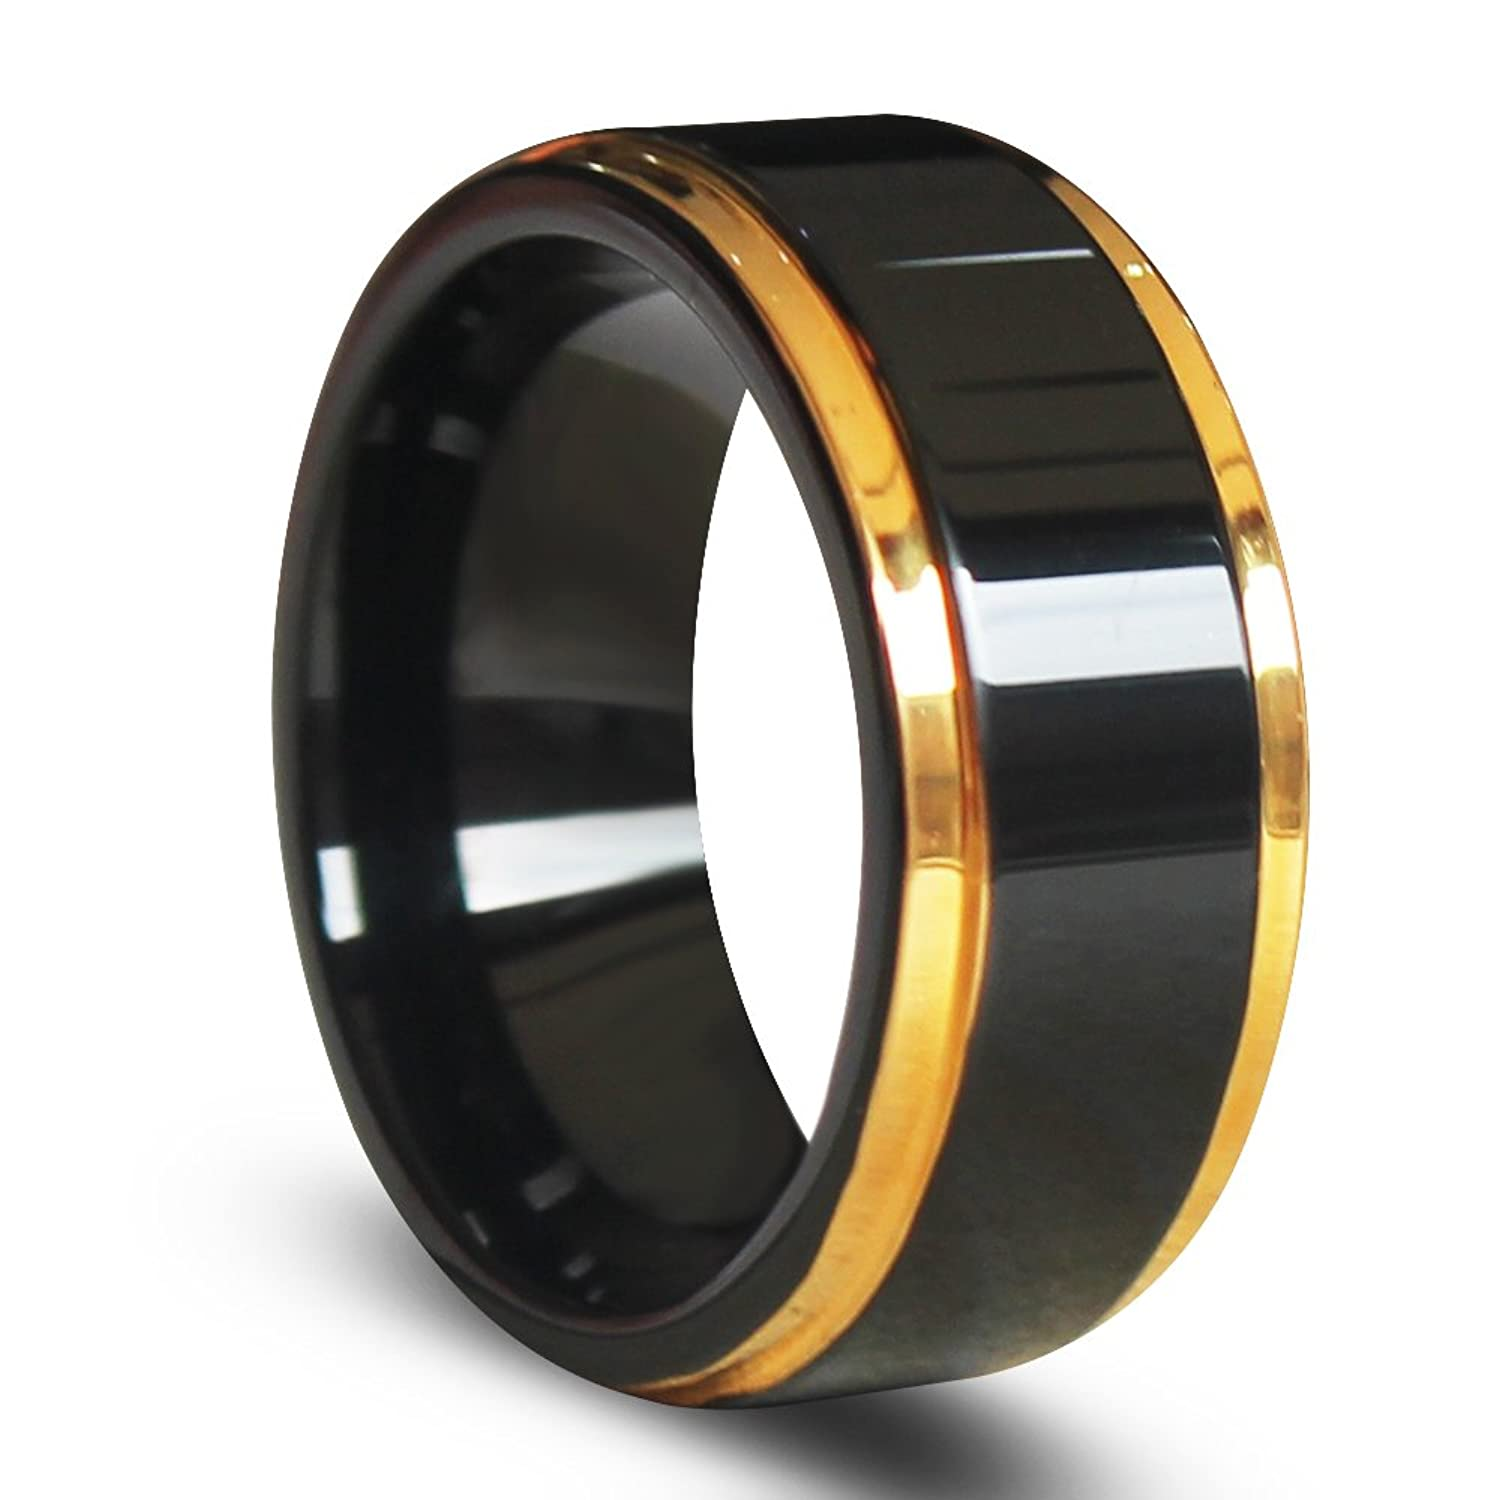 EZreal Gold Edges and Raised Center Top Polished Black Tungsten Carbide Rings , Men